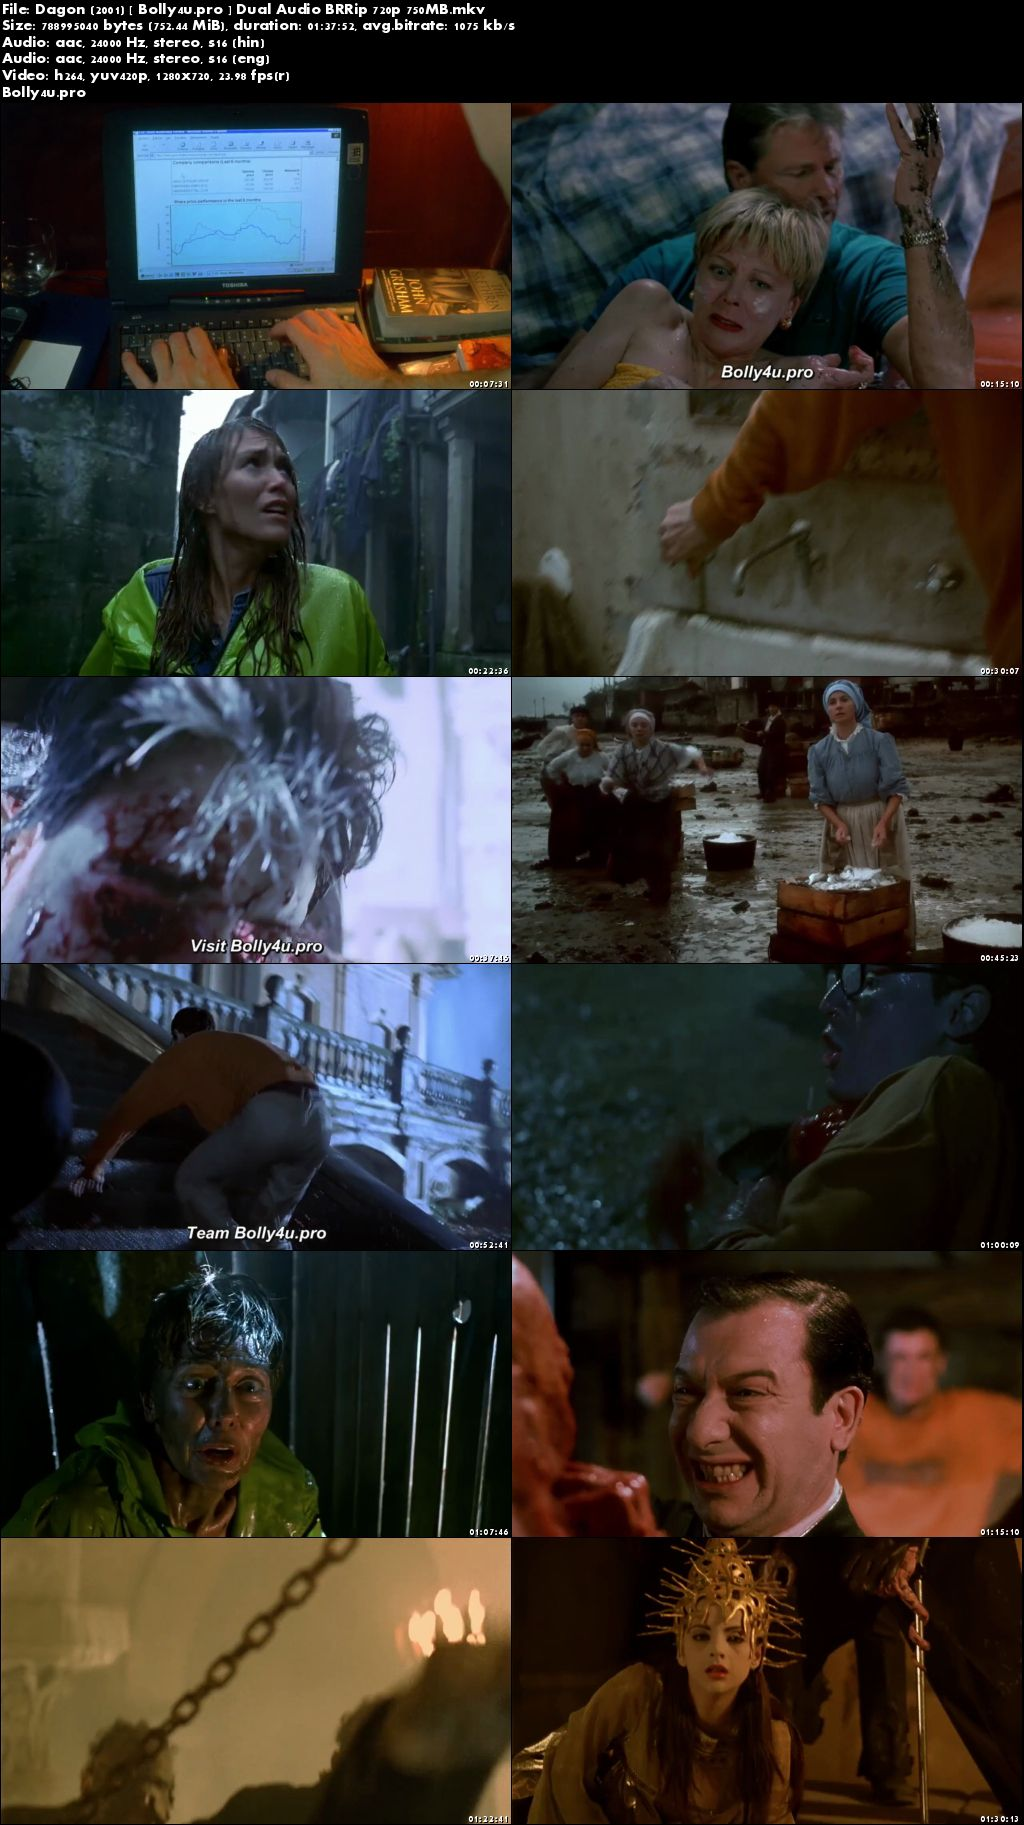 Dagon 2001 BRRip 750Mb Hindi Dual Audio 720p ESub Download